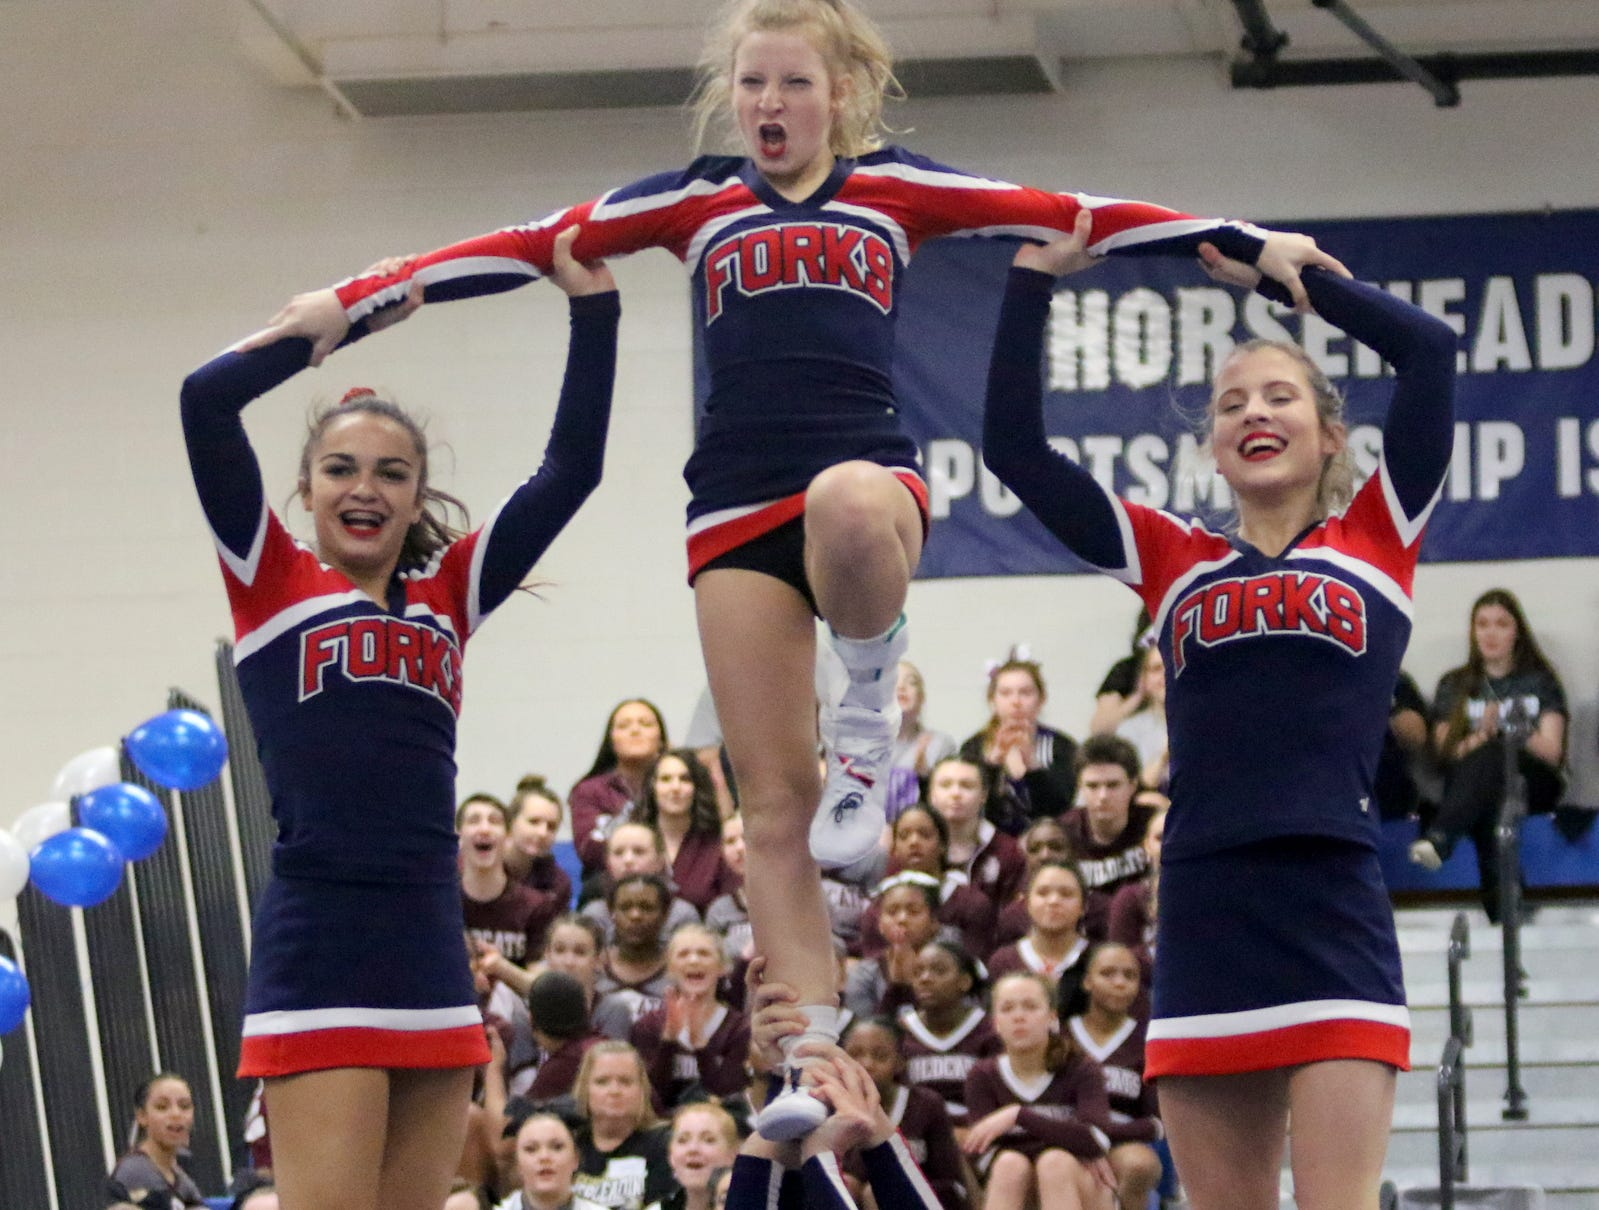 Chenango Forks varsity cheerleaders compete at the STAC Winter Cheer Championships on Feb. 16, 2019 at Horseheads Middle School.